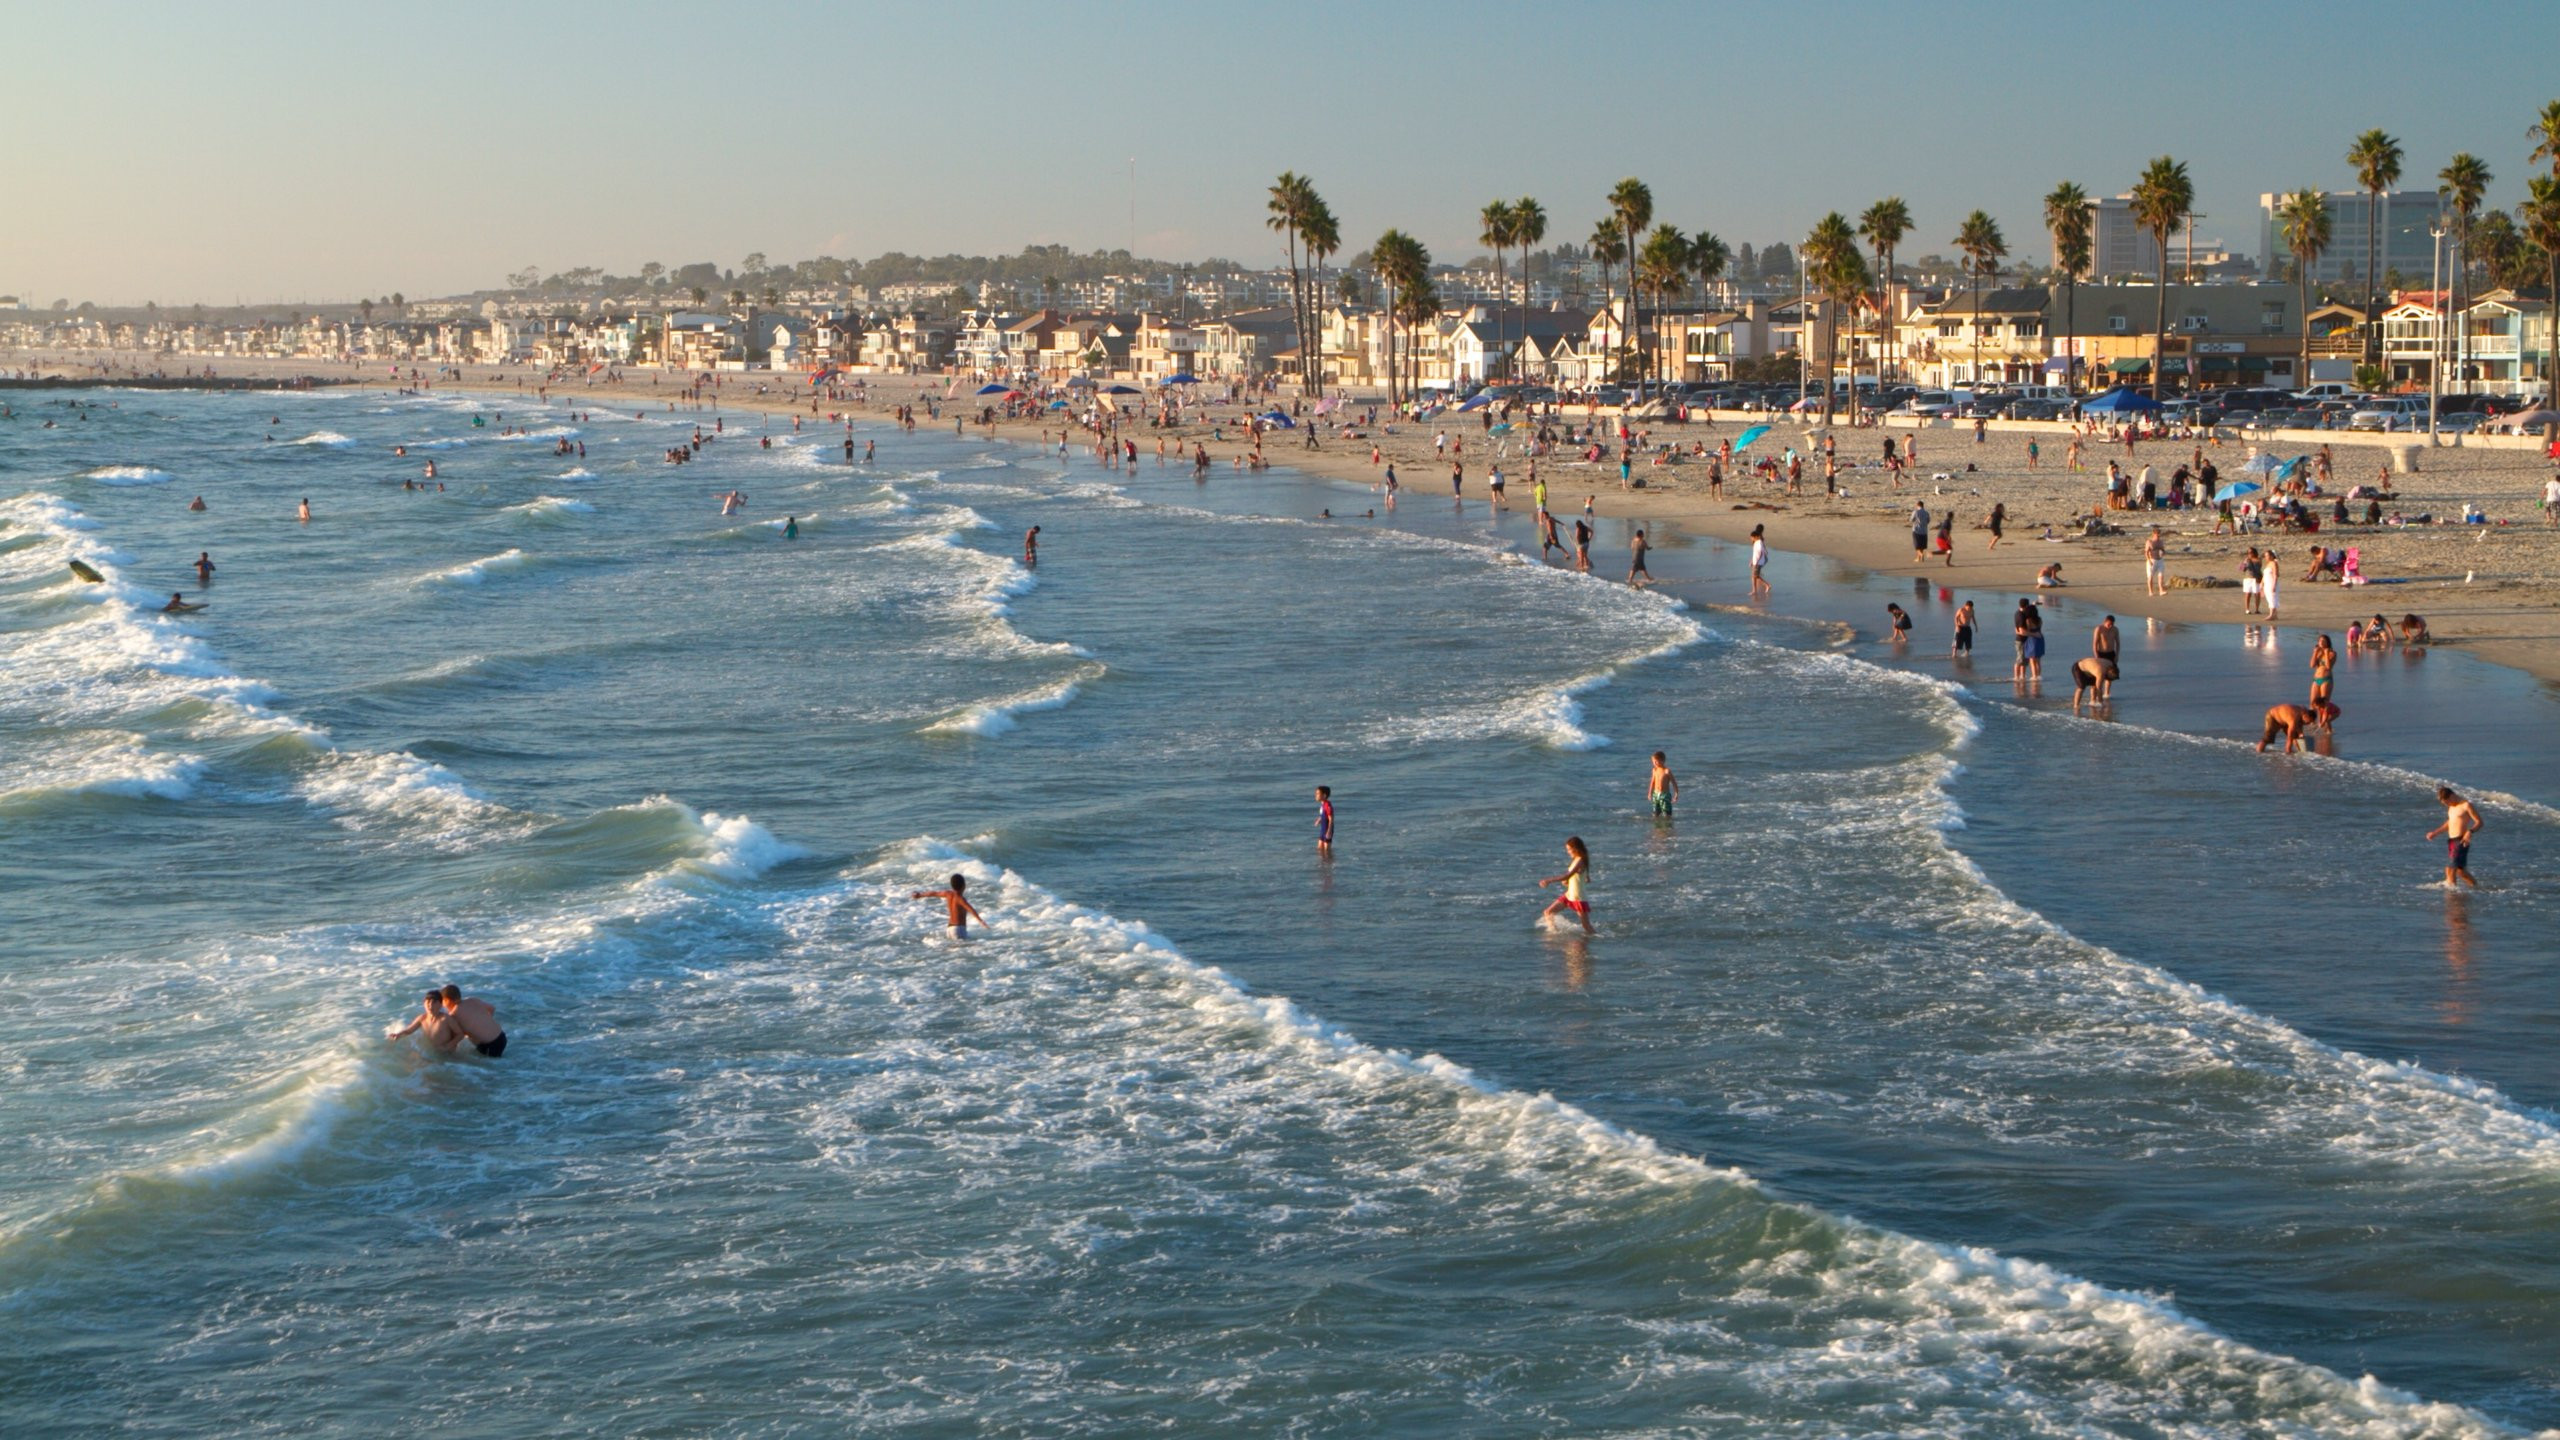 The 10 Best Hotels in Newport Beach, California from $94 for